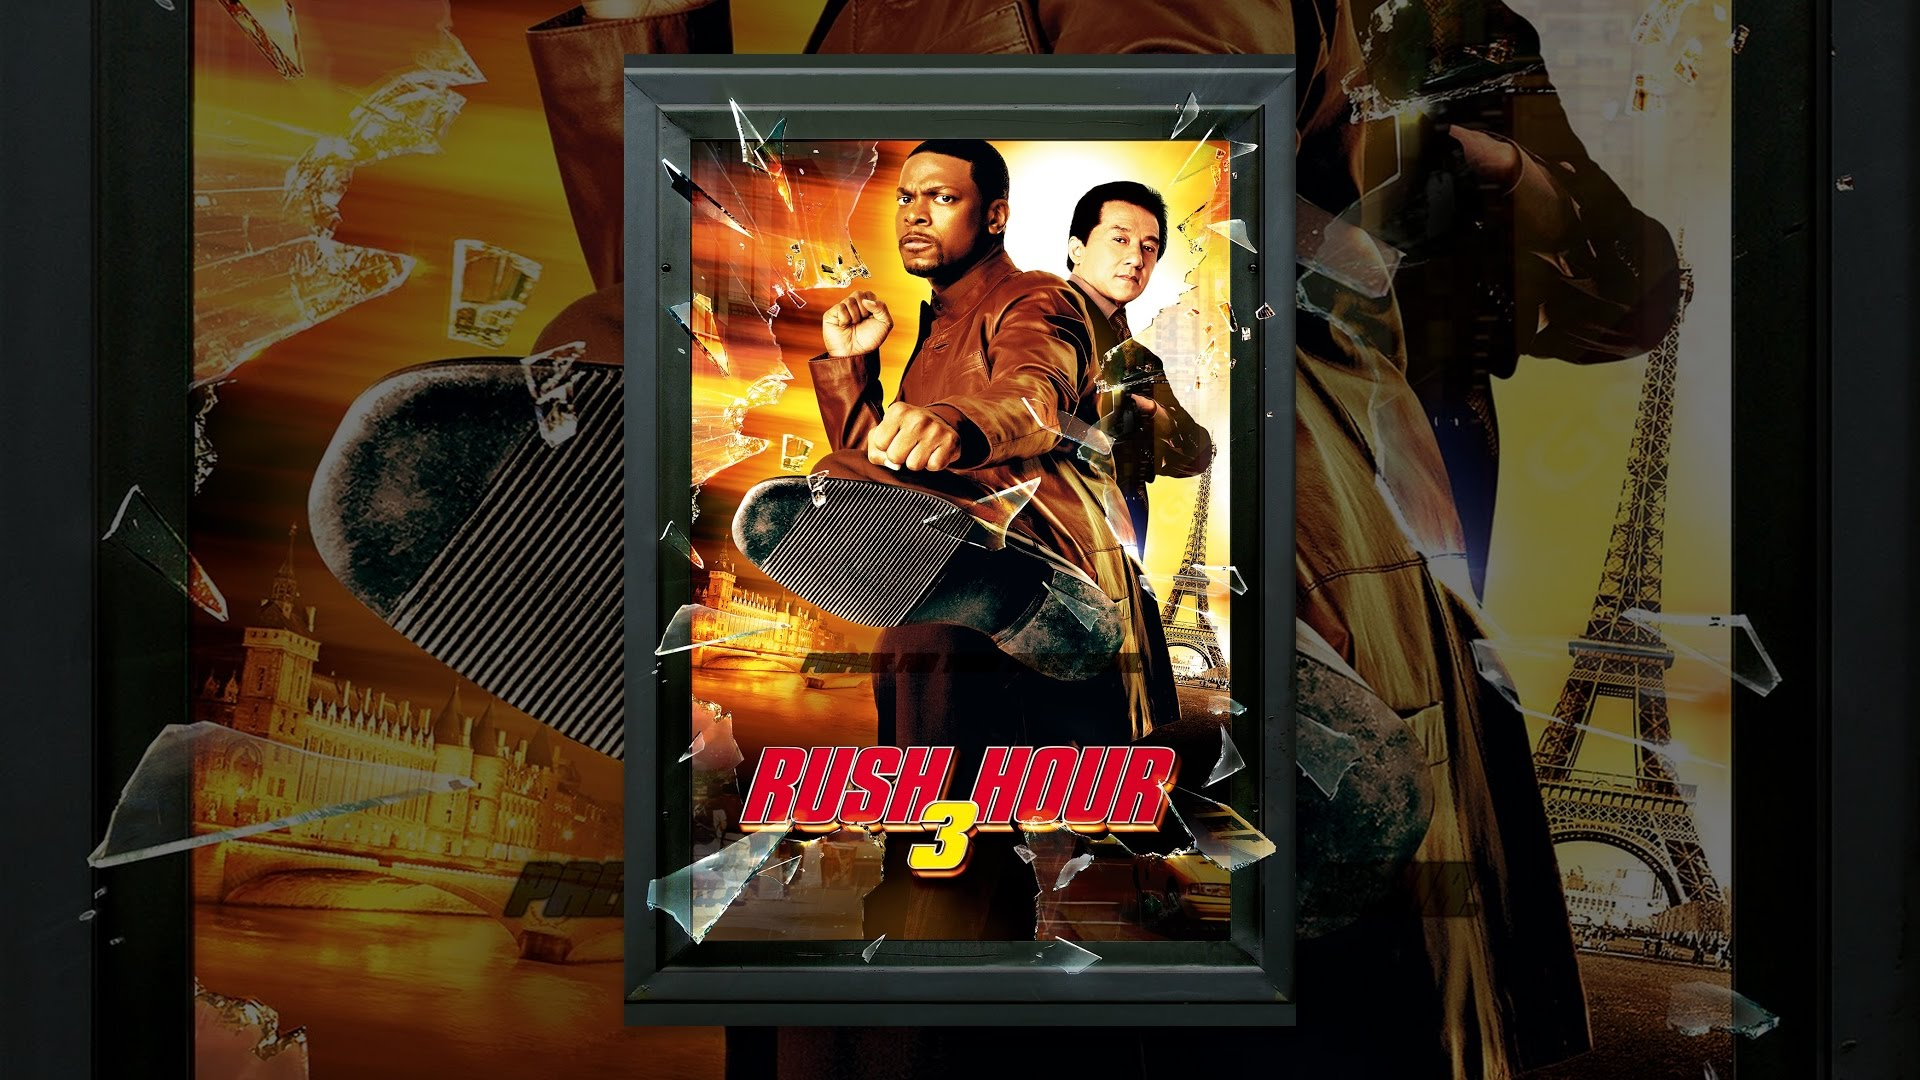 RUSH HOUR 3 - Comic Book and Movie Reviews